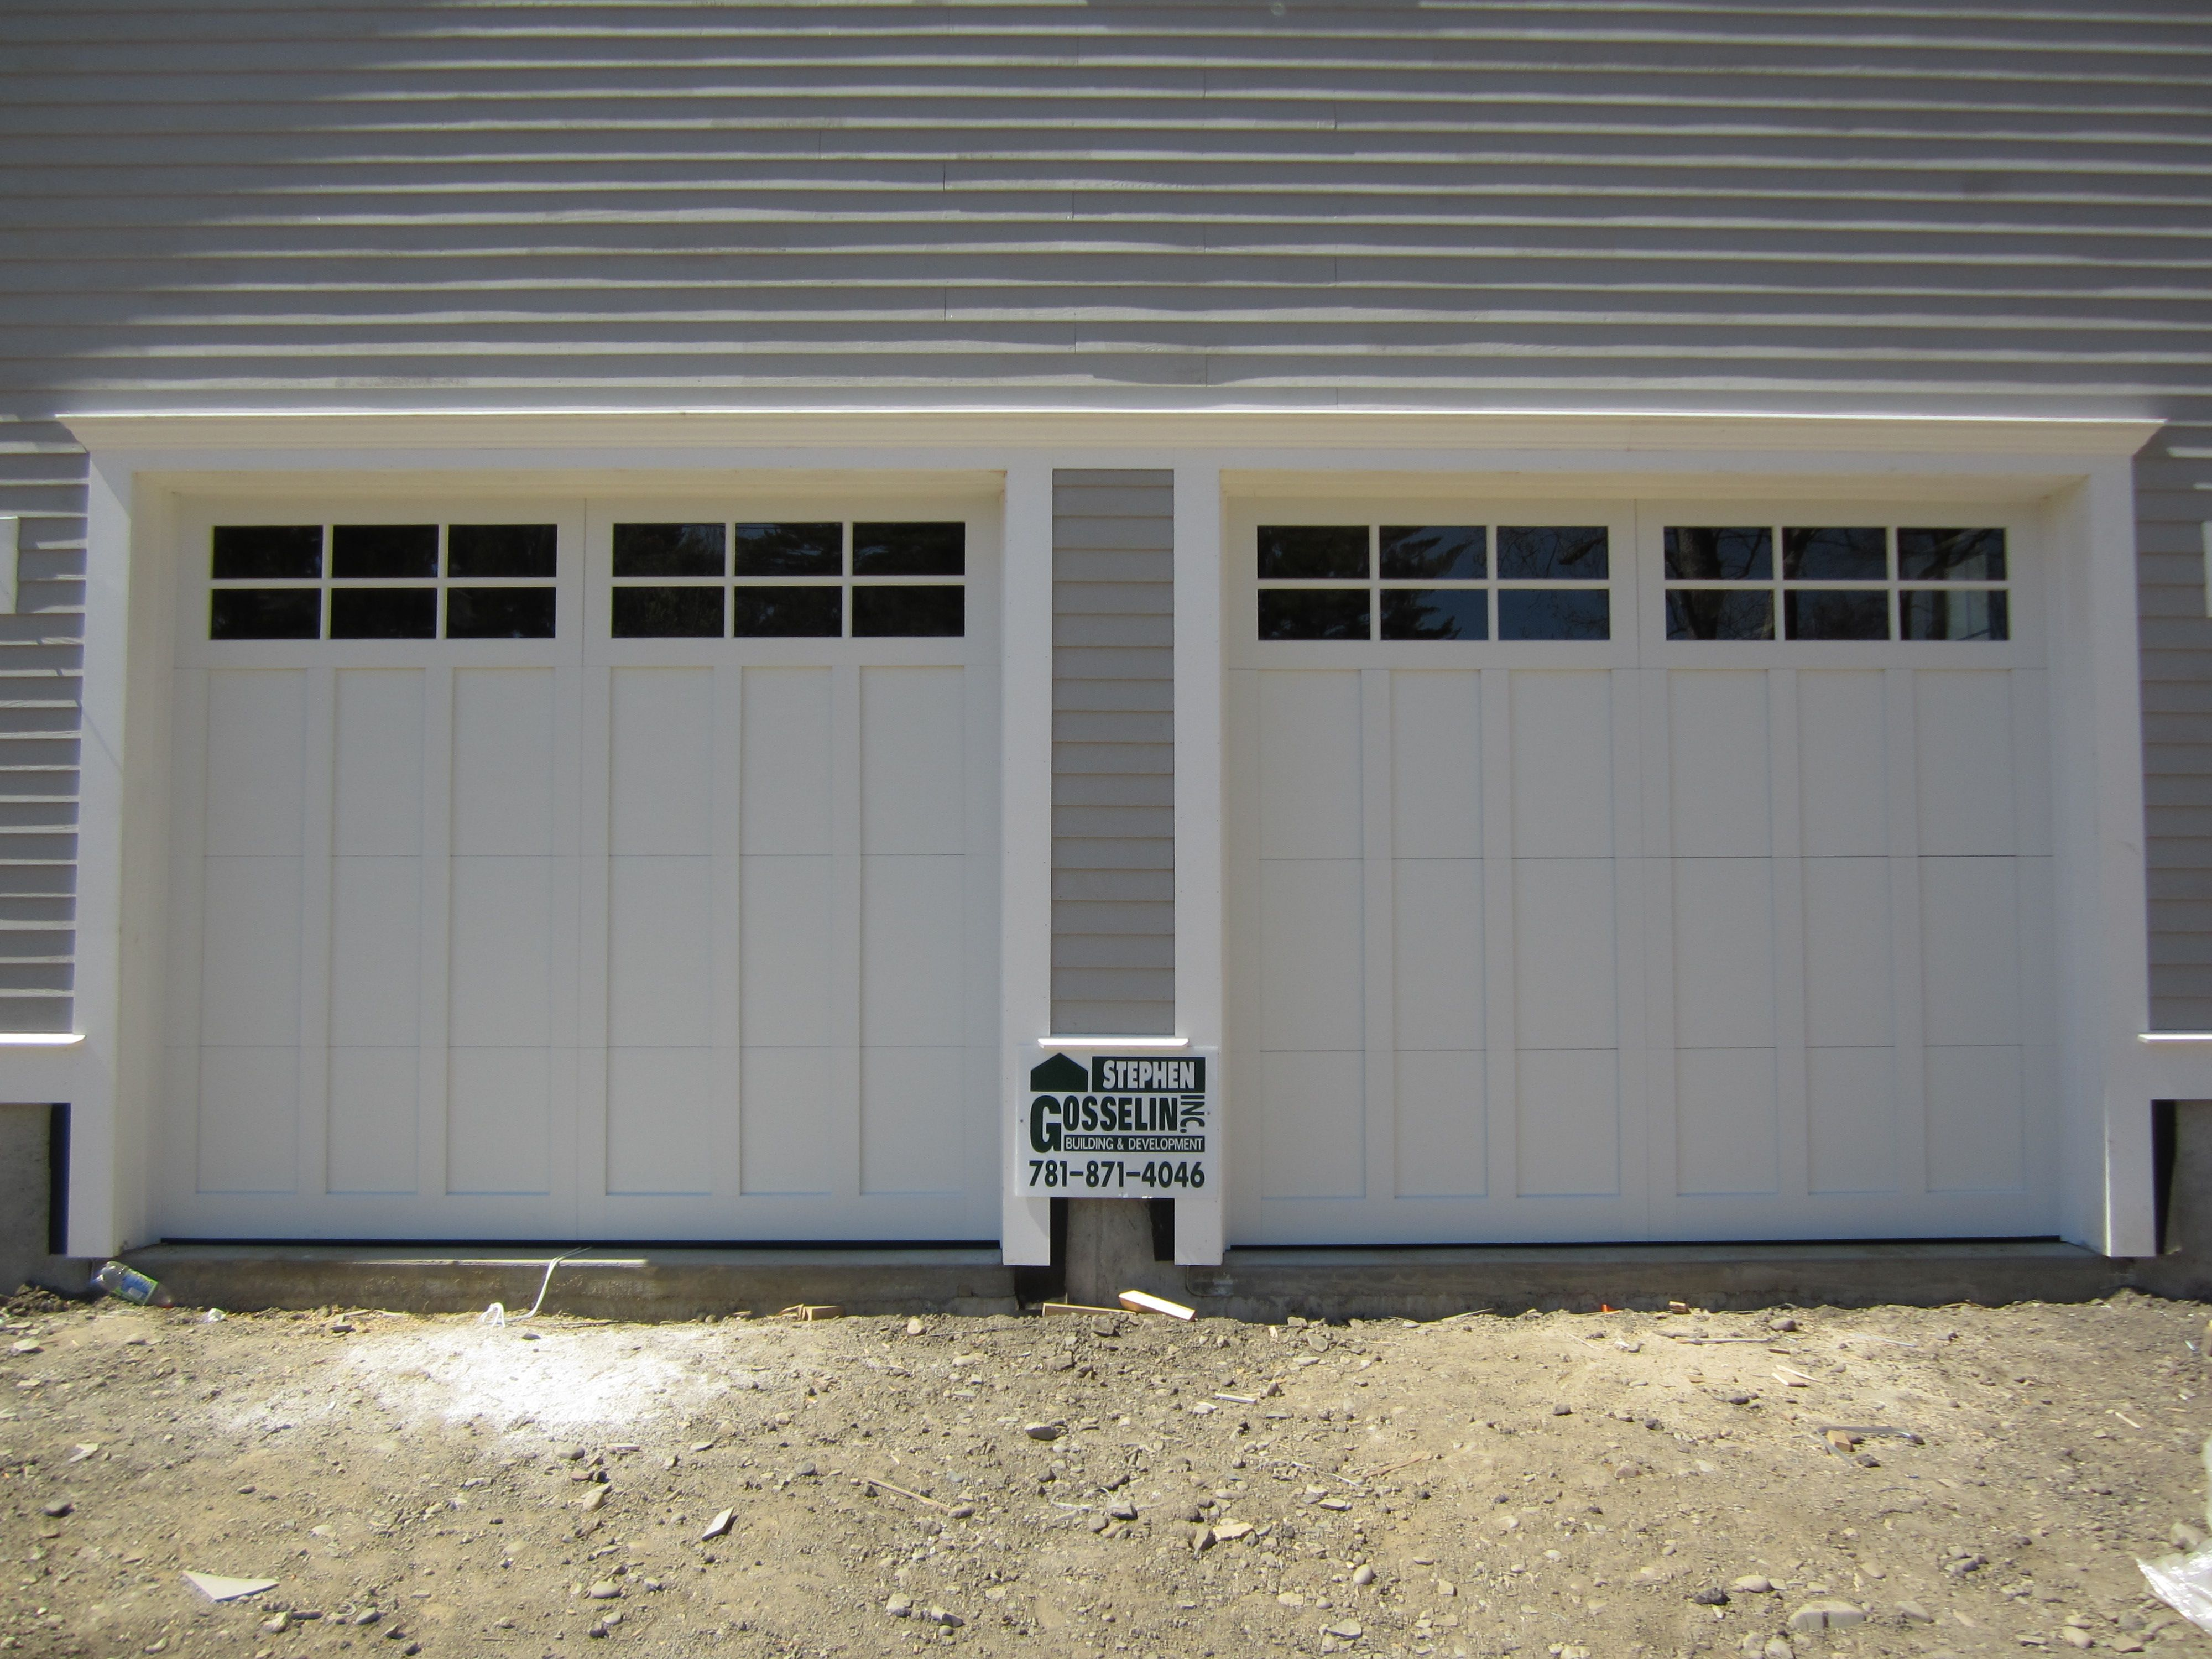 Classica northampton garage door white 9 x 8 no windows -  C H I Overhead Doors Model 5916 Long Panel Steel Carriage House Garage Doors In White Installed By Mortland Overhead Door Mortlanddoor Com Pinterest